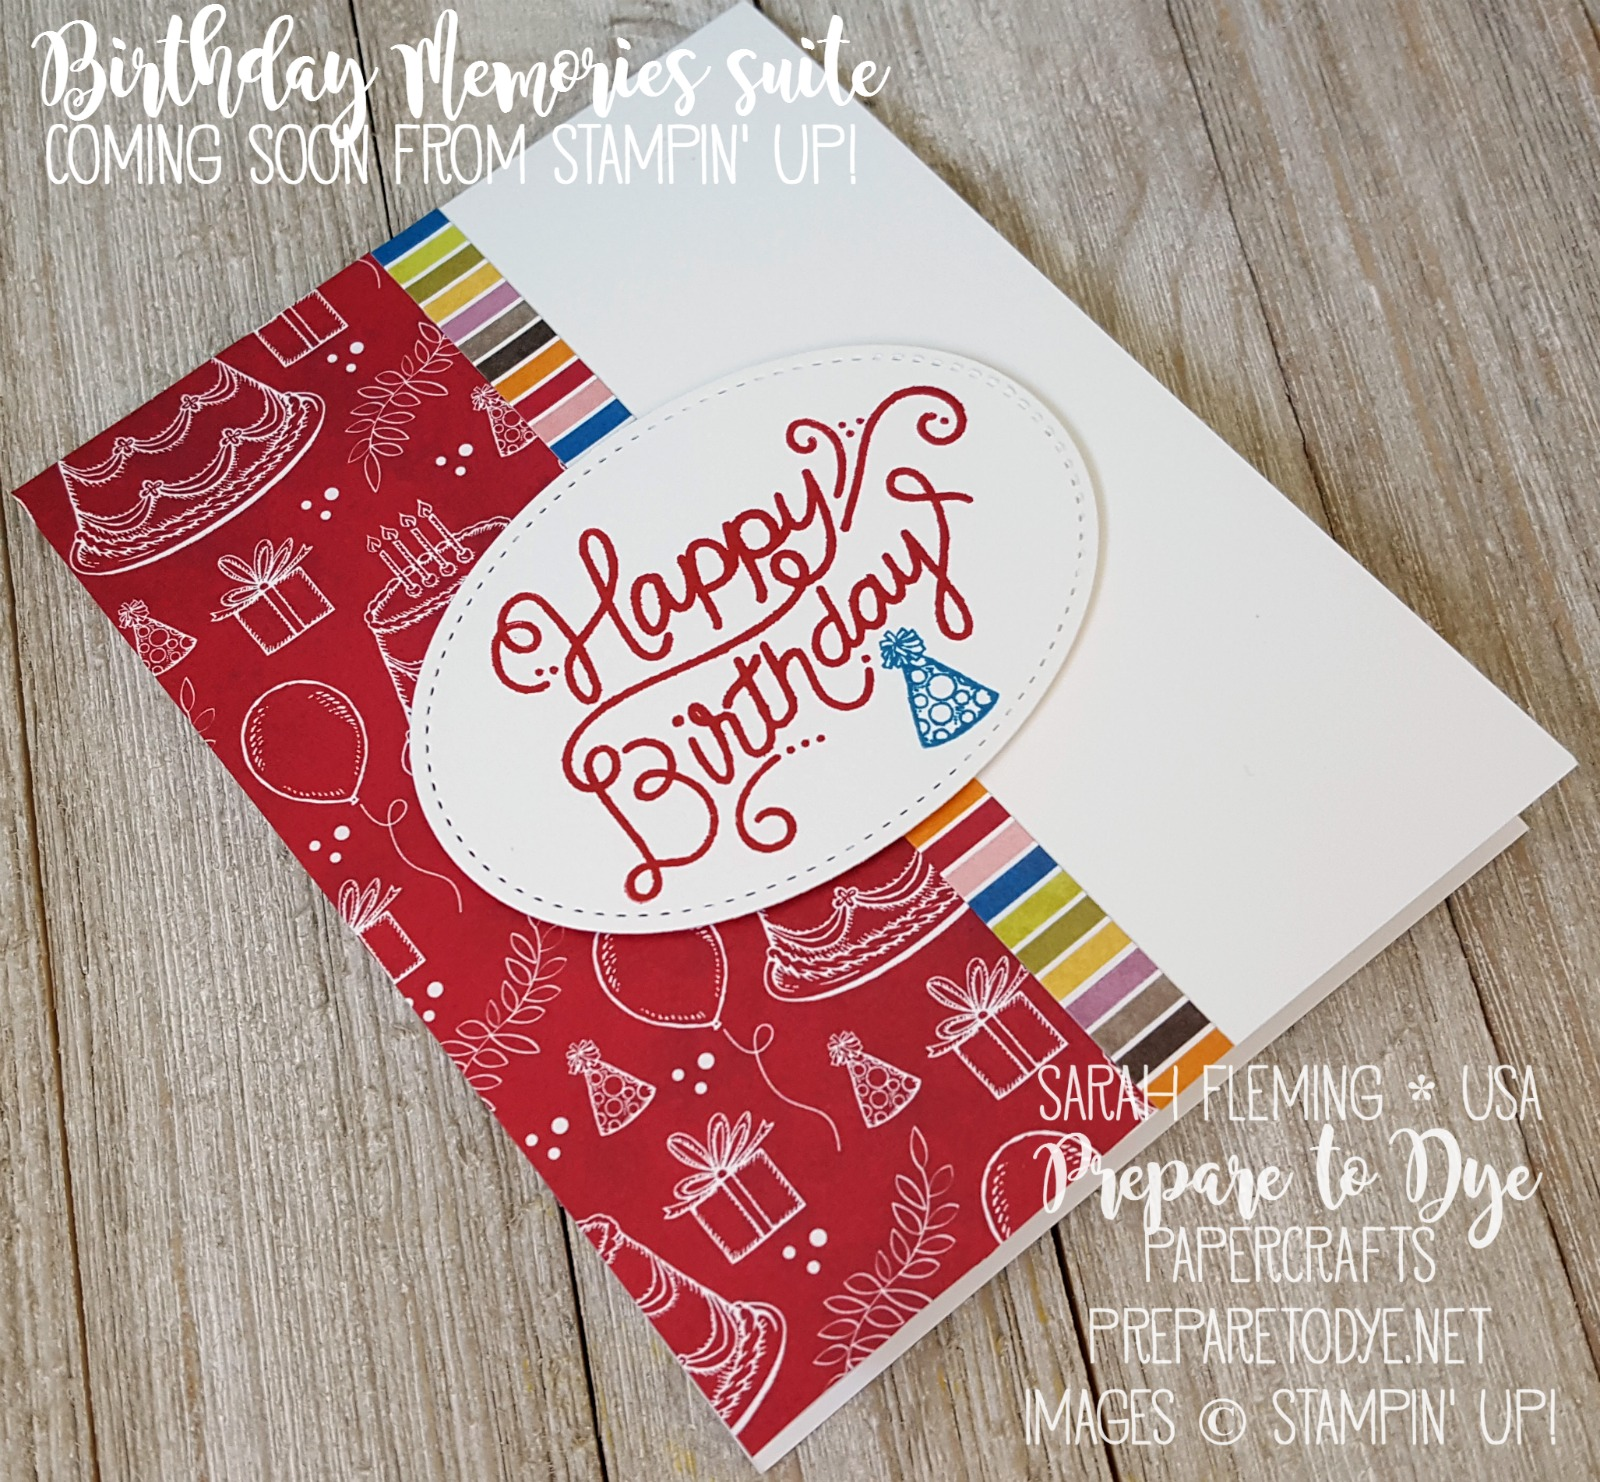 Stampin' Up! Birthday Delivery clean and simple card with Birthday Memories paper - CAS - Splitcoaststampers Creative Crew - Stitched Shapes framelits - Sarah Fleming - Prepare to Dye Papercrafts